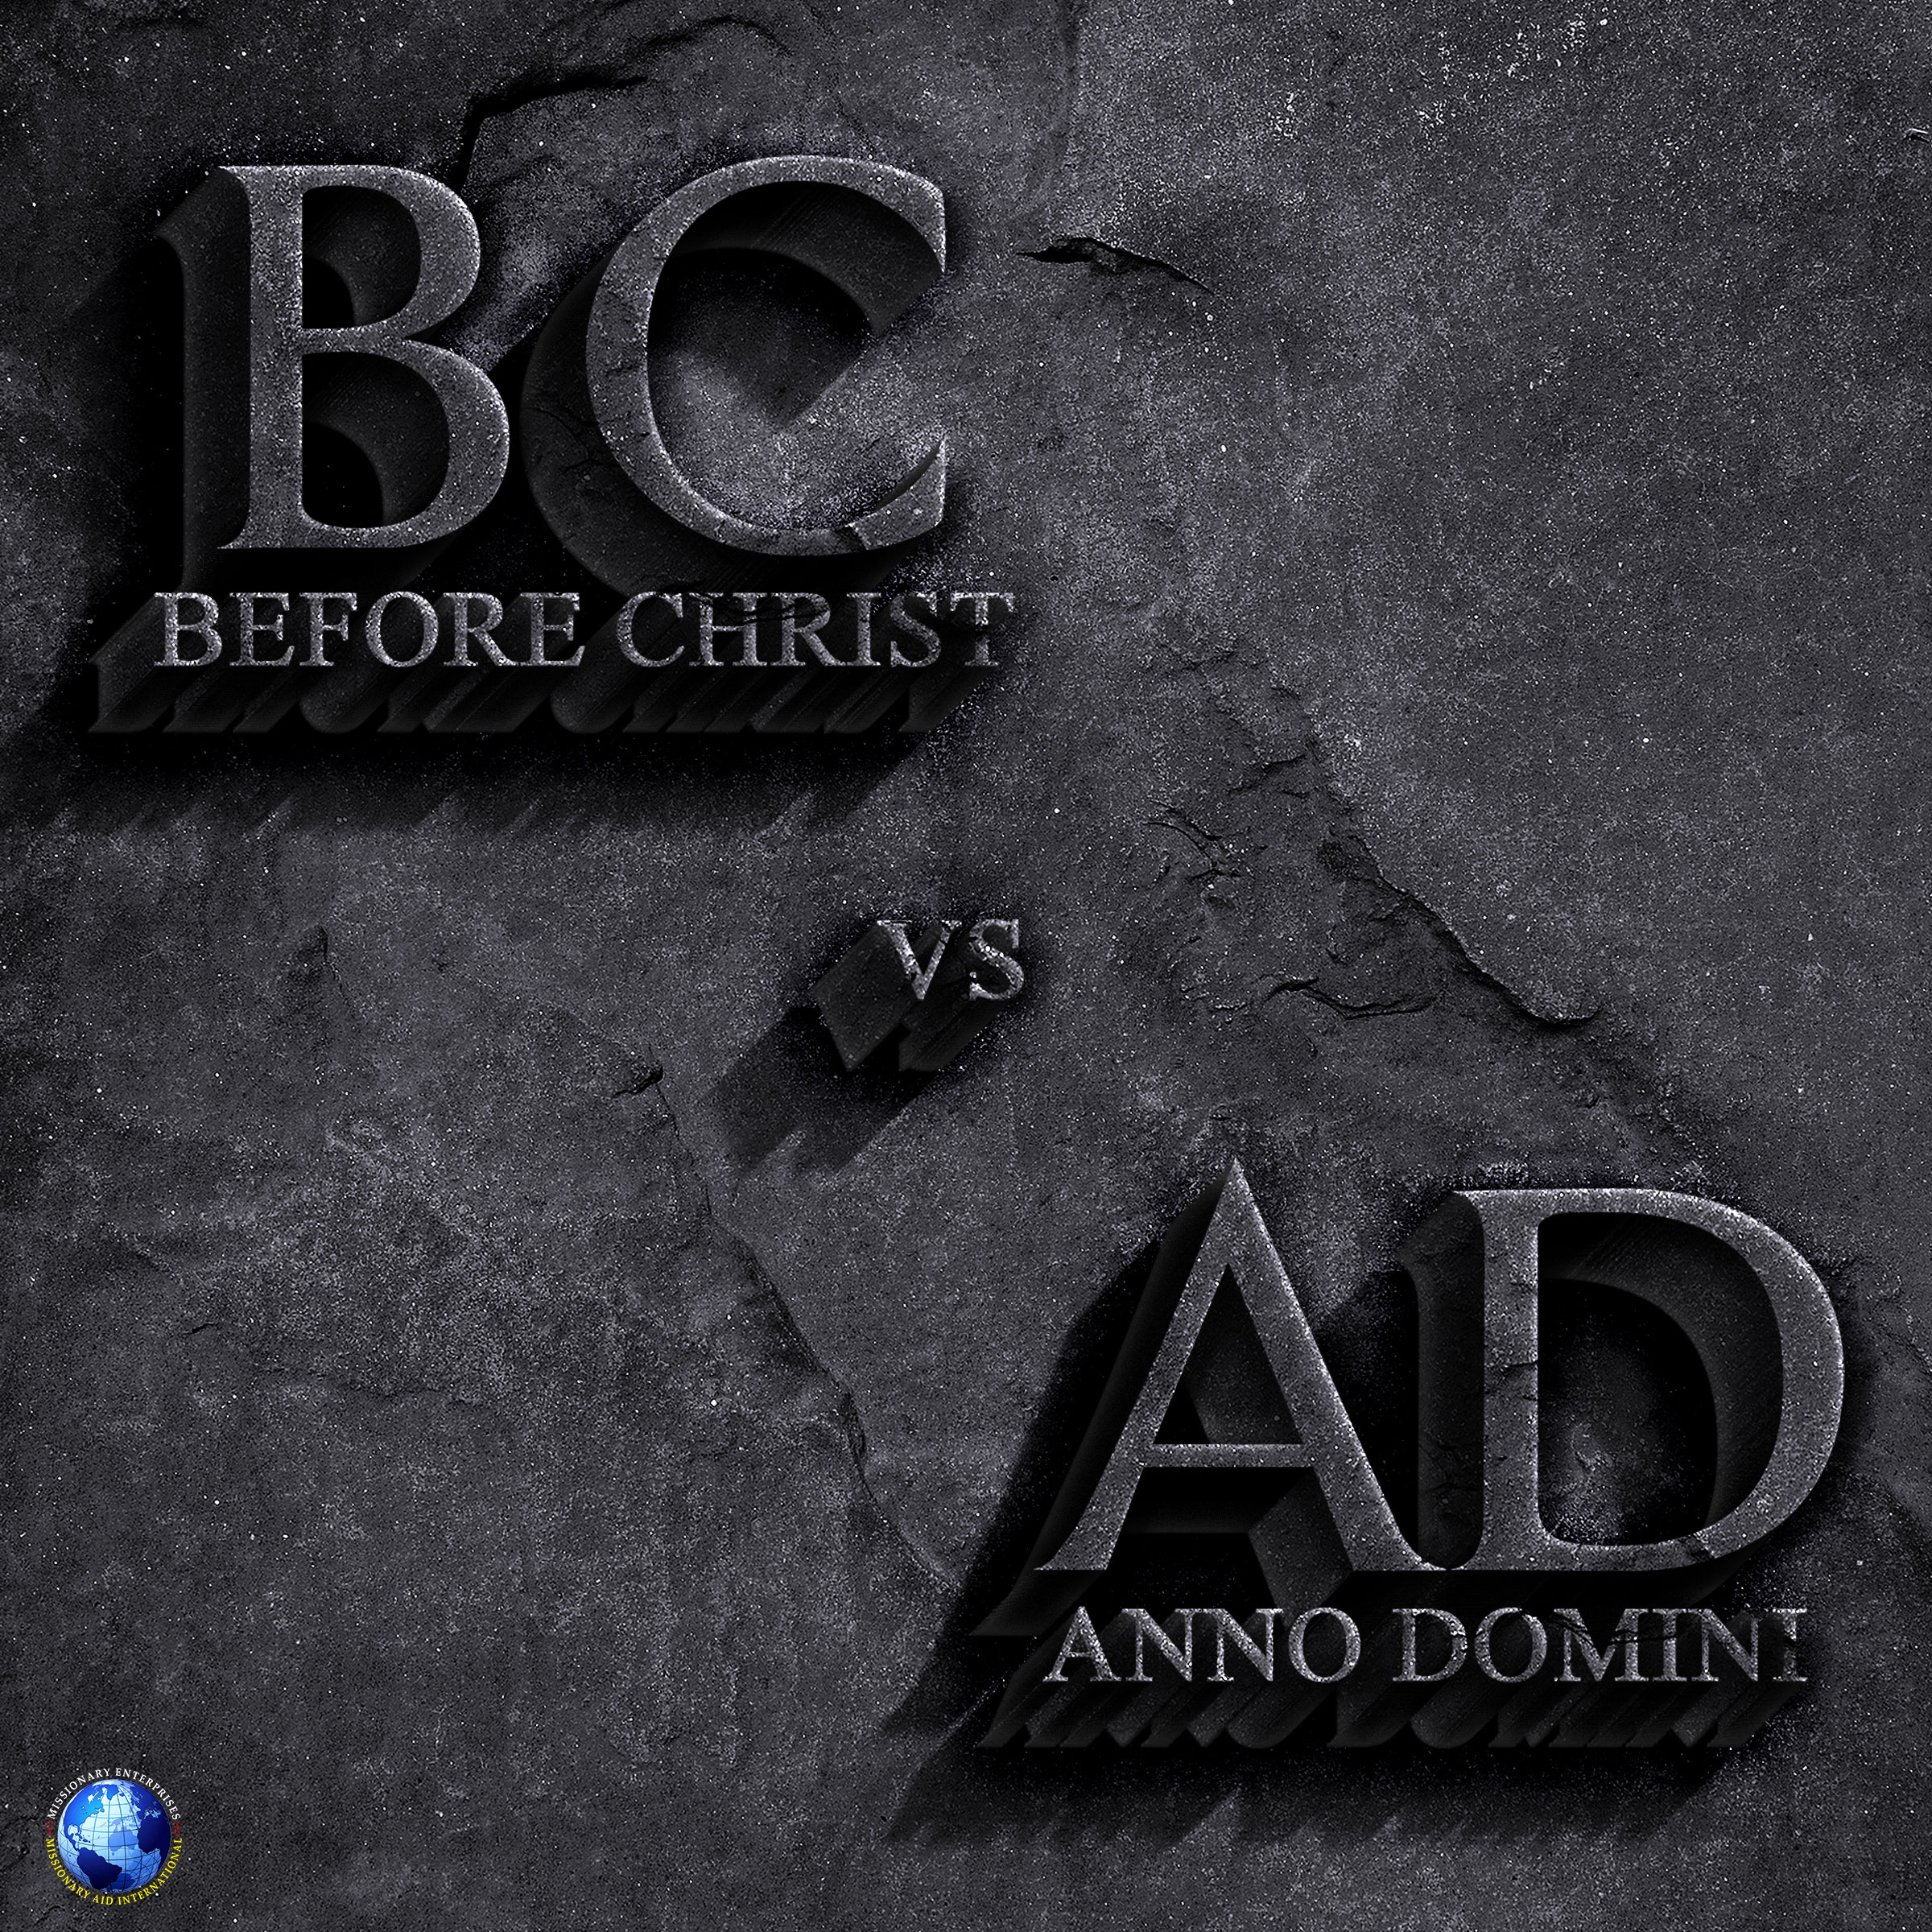 Before Christ vs Anno Domini